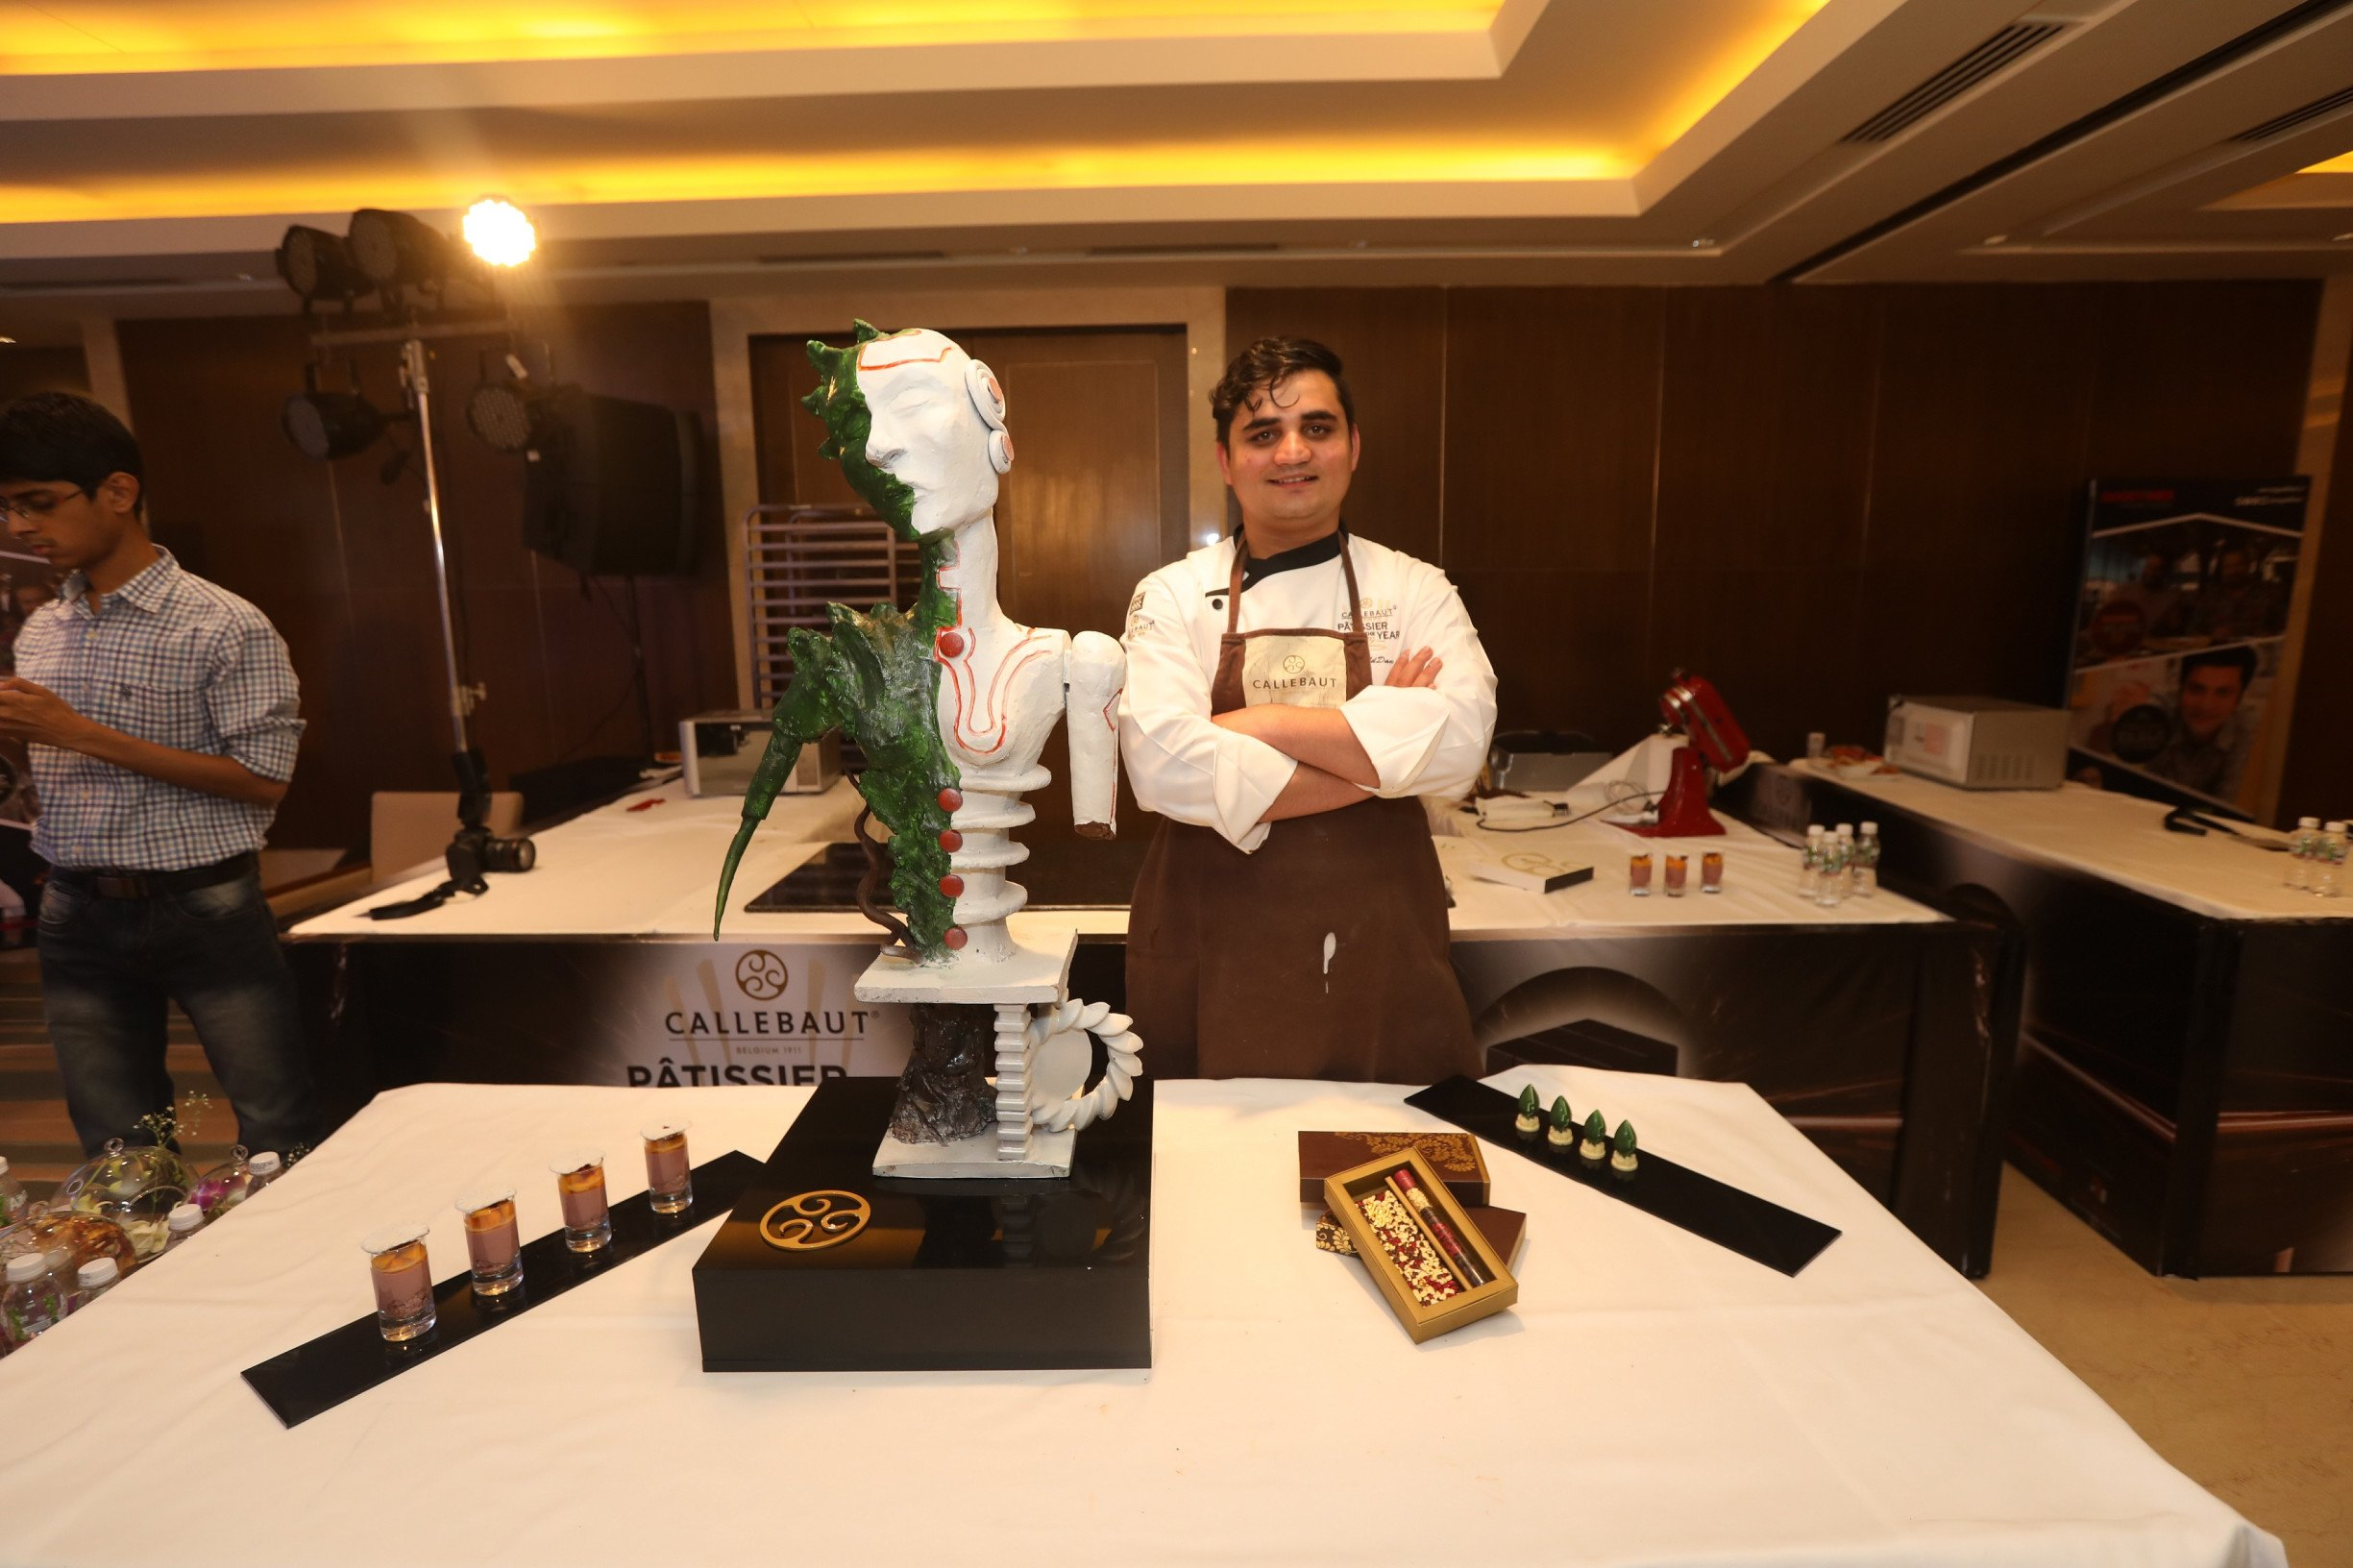 Callebaut's Patissier of the Year defines the 'Future of Chocolate'